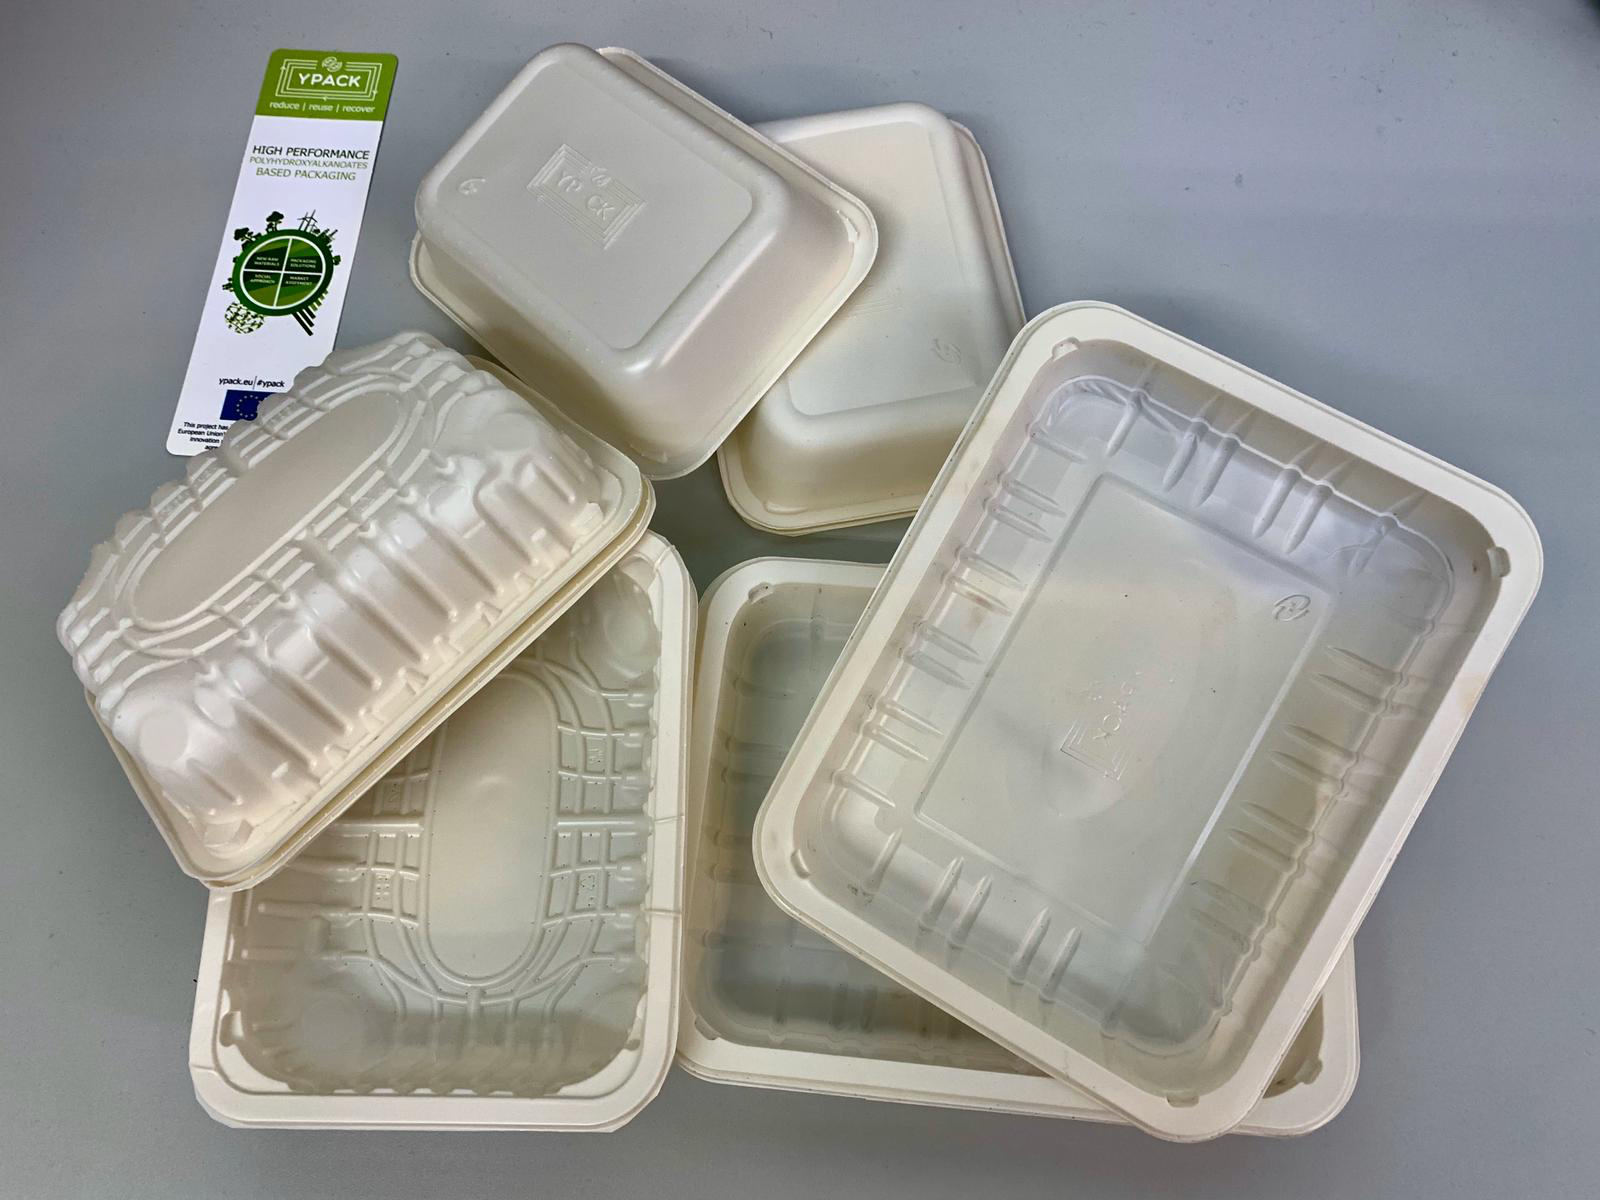 The compostable plastic trays produced for the Horizon 2020 YPACK project